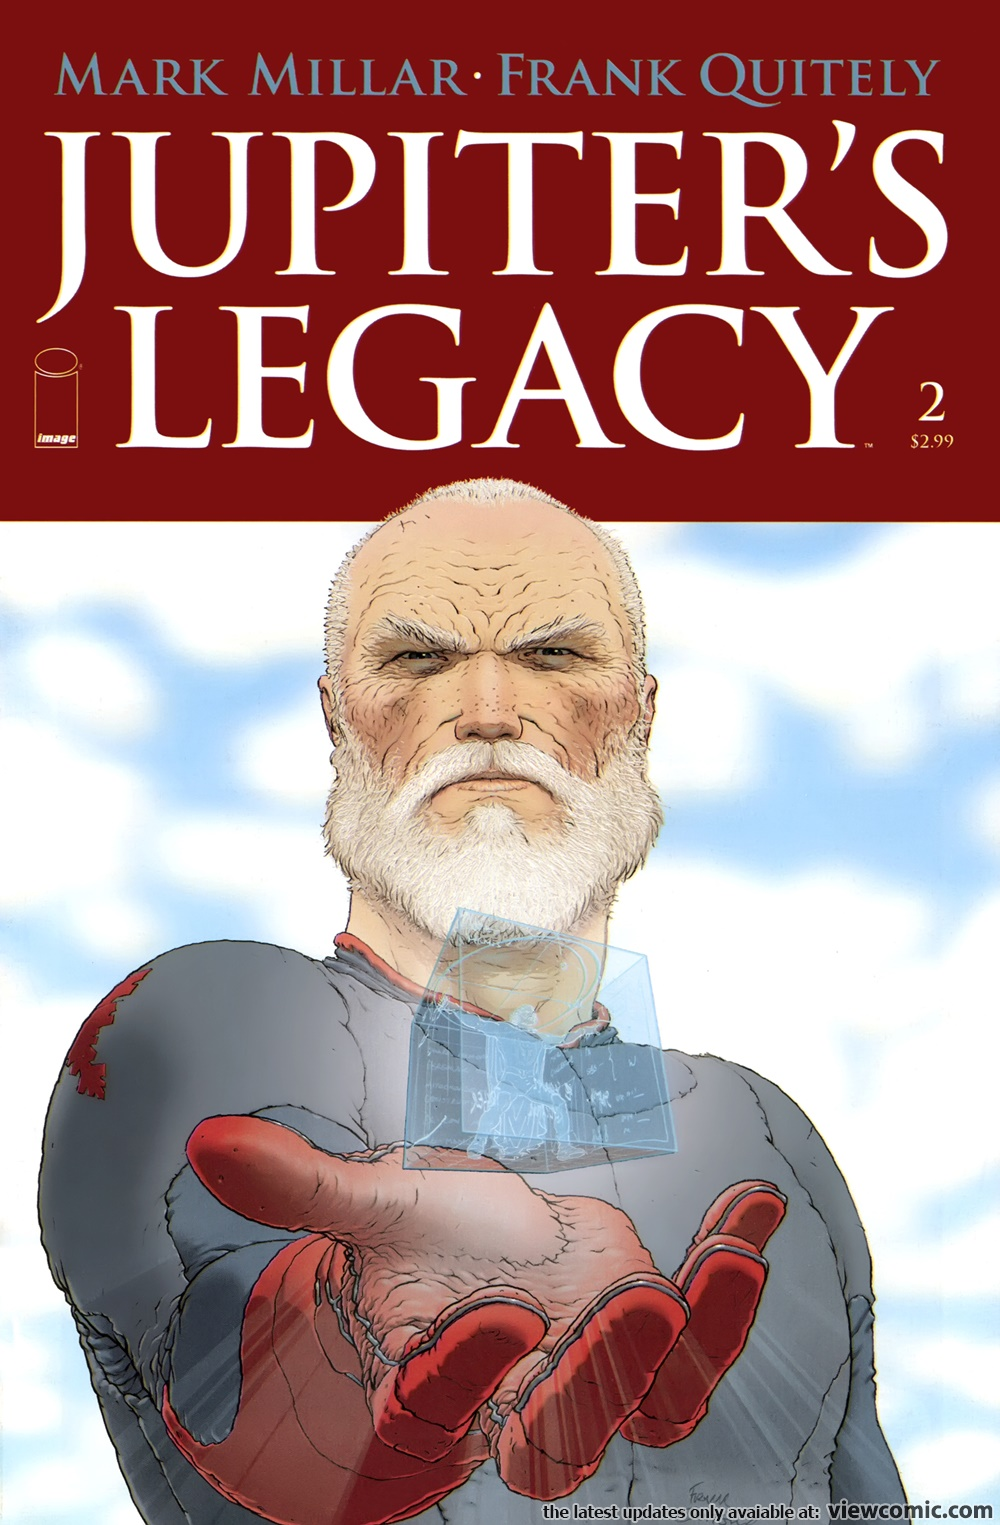 Jupiters Legacy 002 2013 Read Jupiters Legacy 002 2013 Comic Online In High Quality Read Full Comic Online For Free Read Comics Online In High Quality